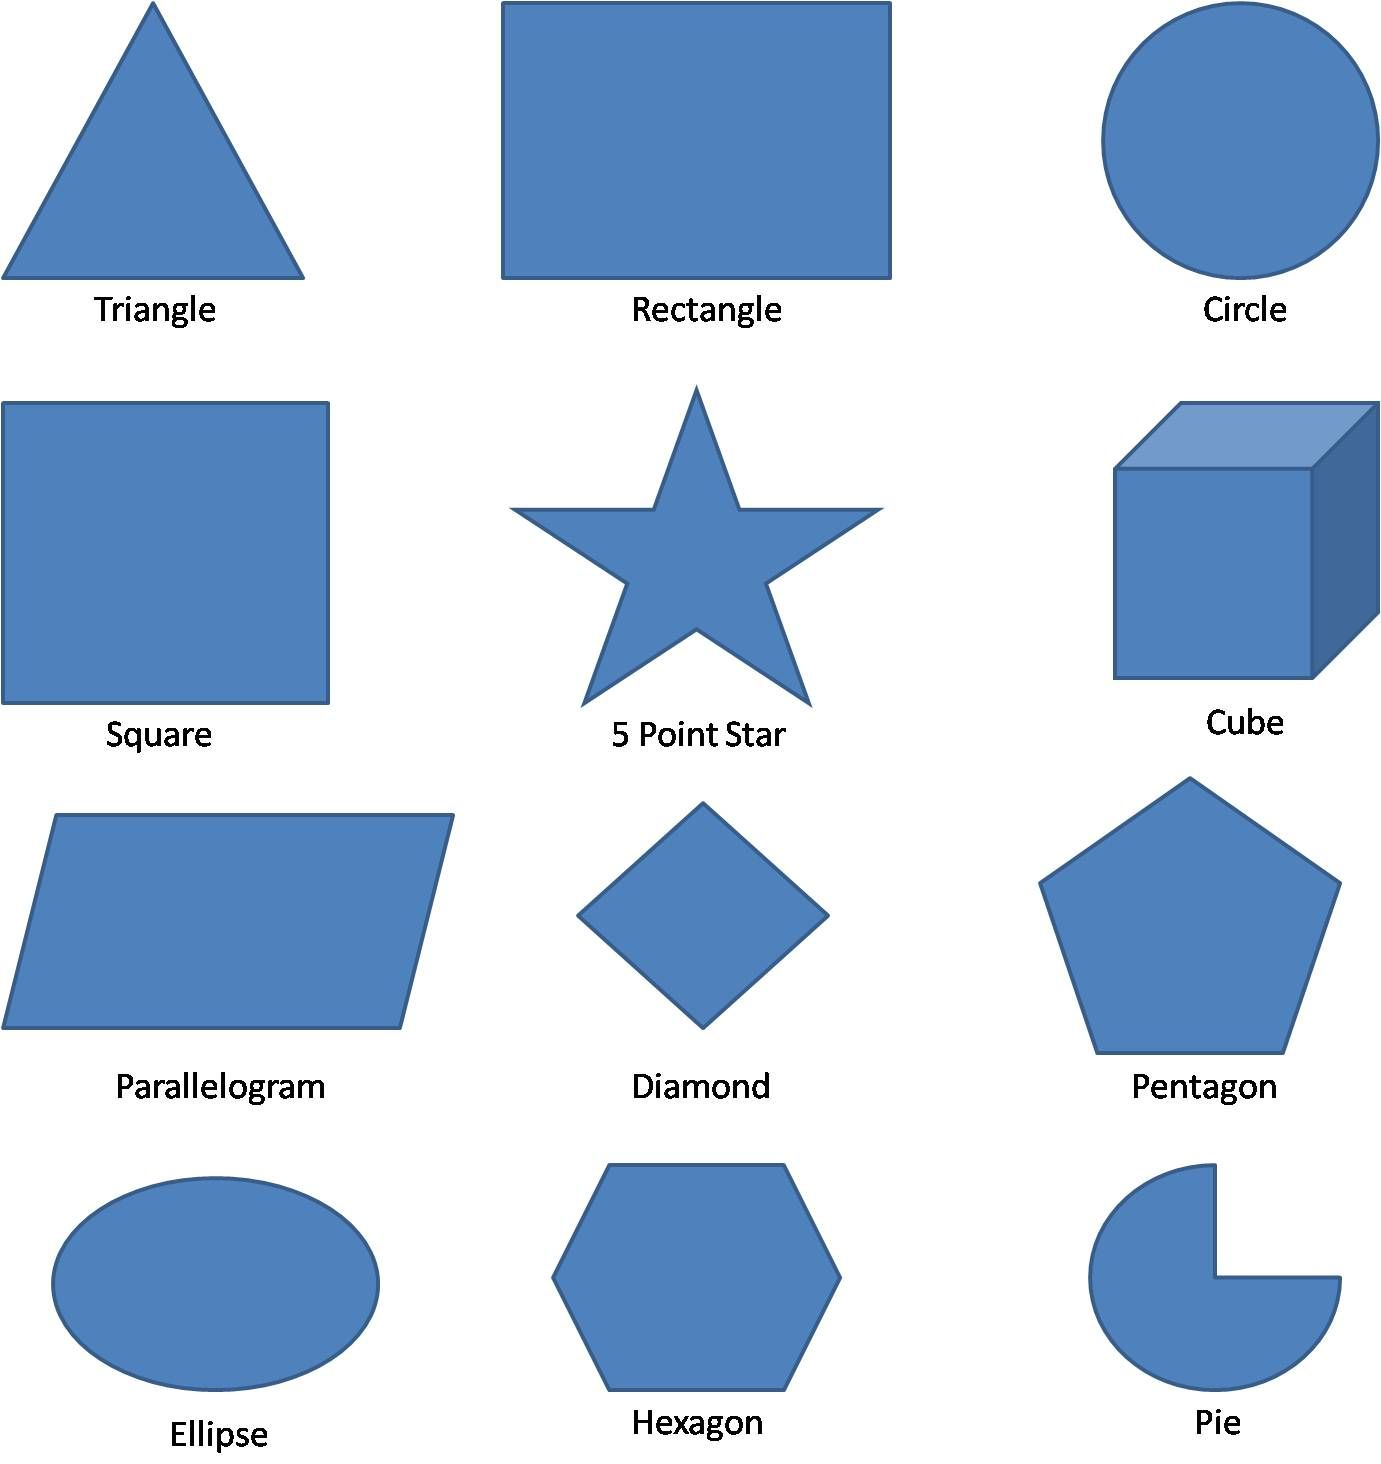 Worksheet Names Shapes pin by amanda brinkley on homeschool daydreams pinterest shape 3d geometric shapes and shapes